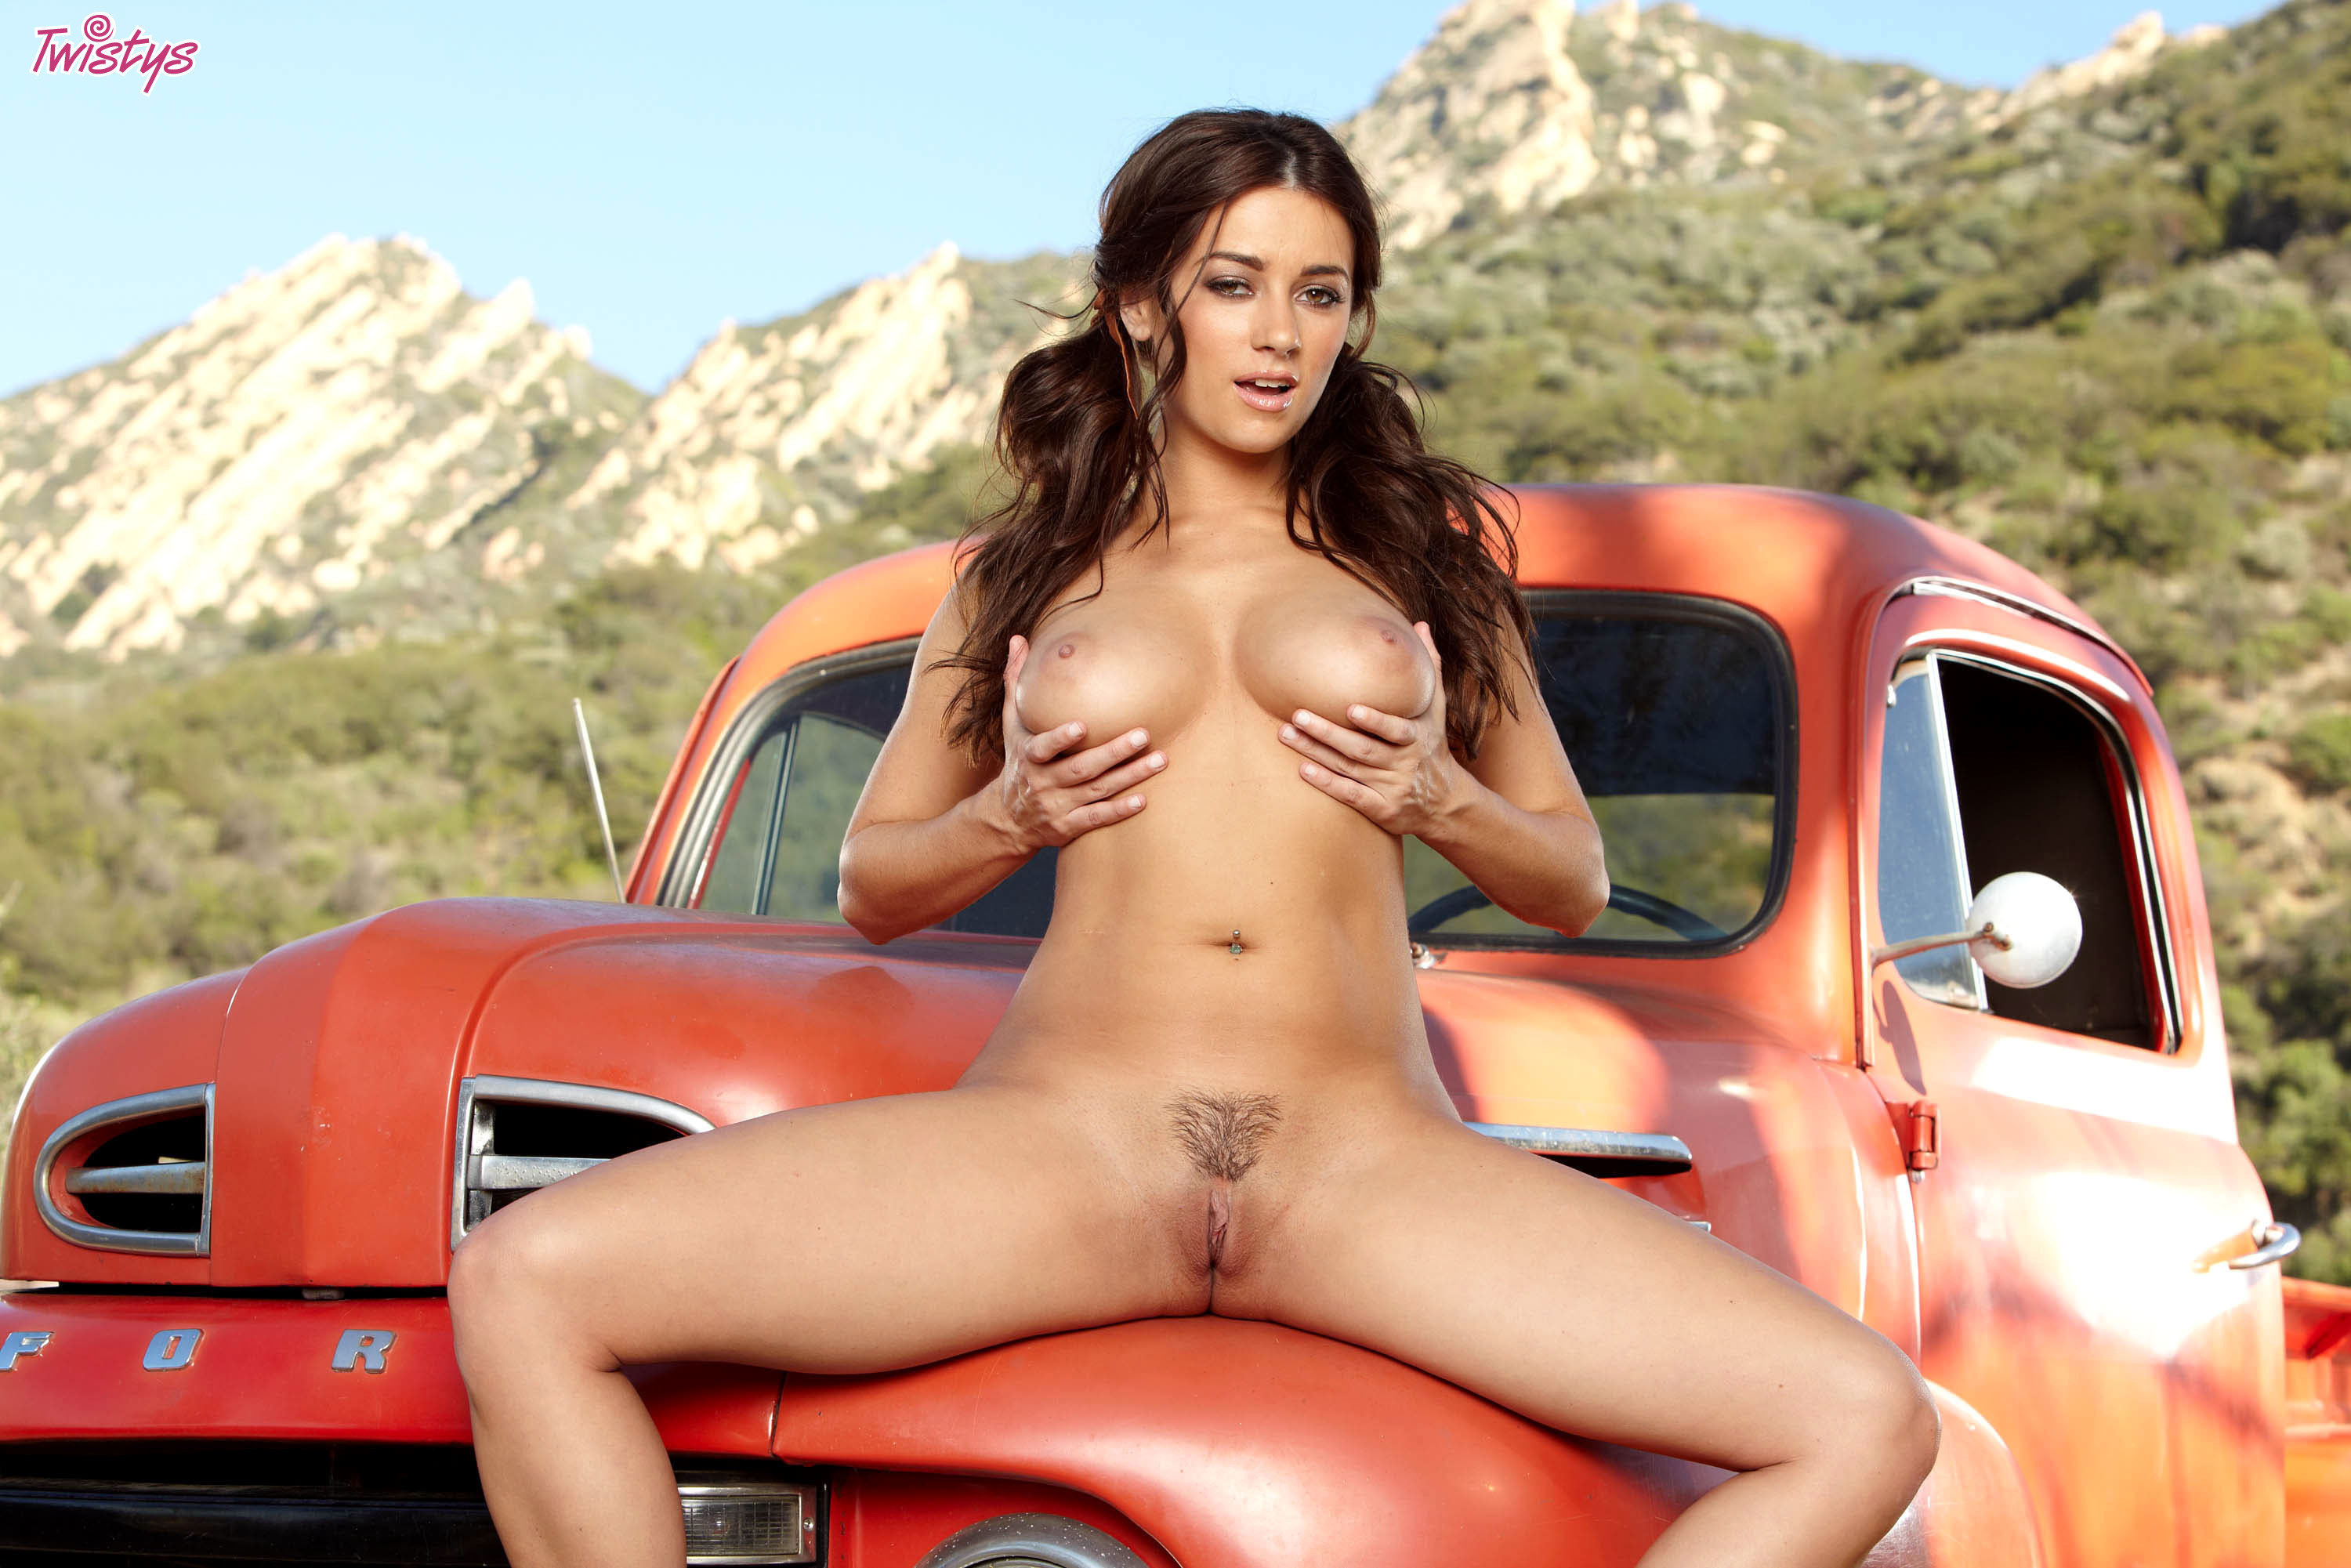 Apologise, but, hot naked girls with cars